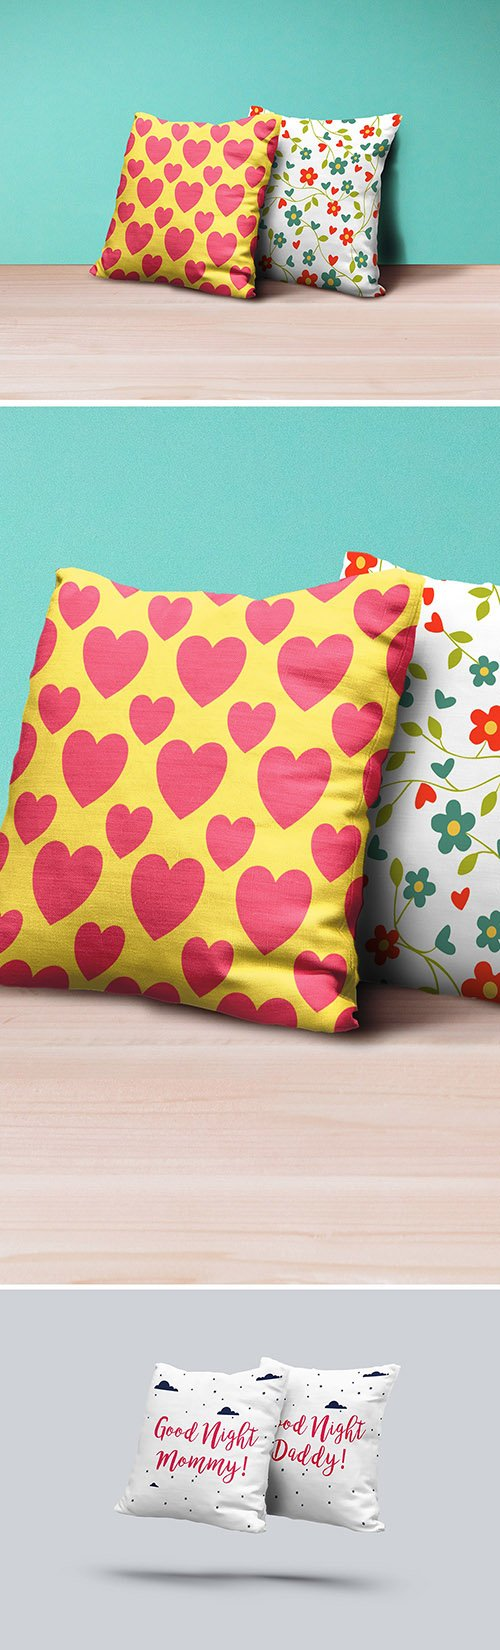 PSD Mock-Ups - Pillows